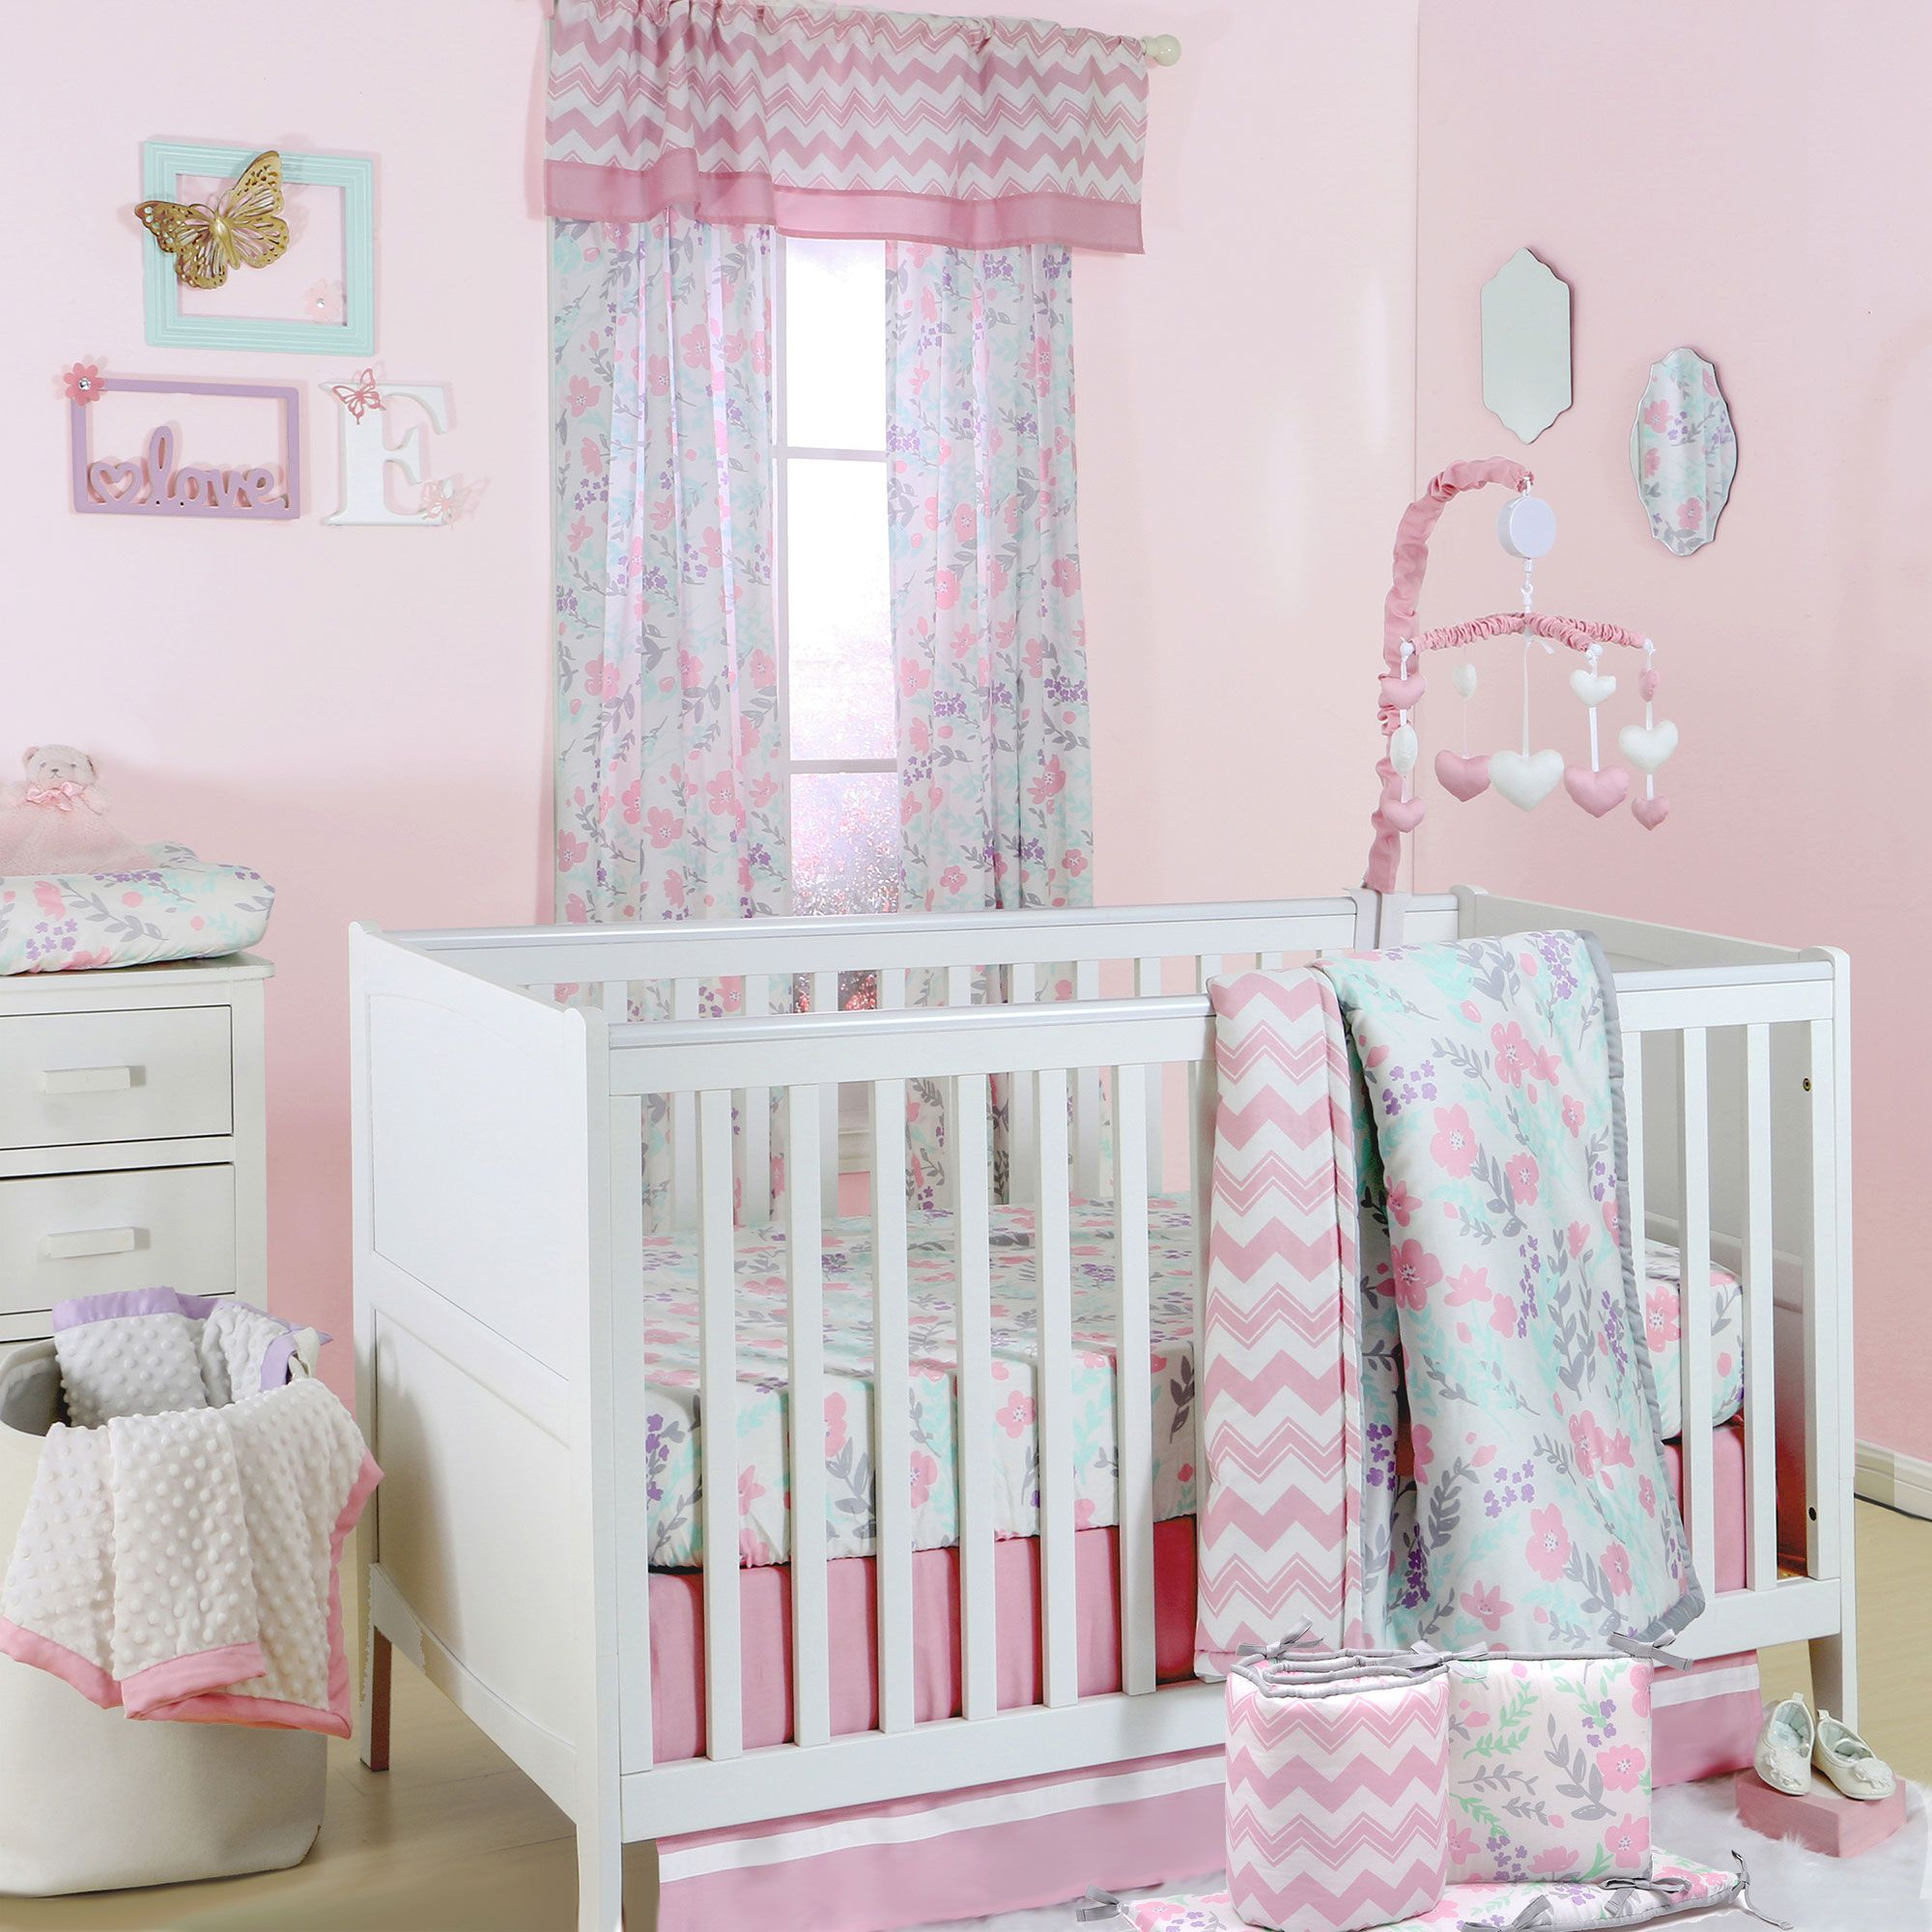 canada etsy wonderful bedding girl gray floral bedroom elephants grey chevron australia pink and crib sets cribs nursery with baby images set yellow